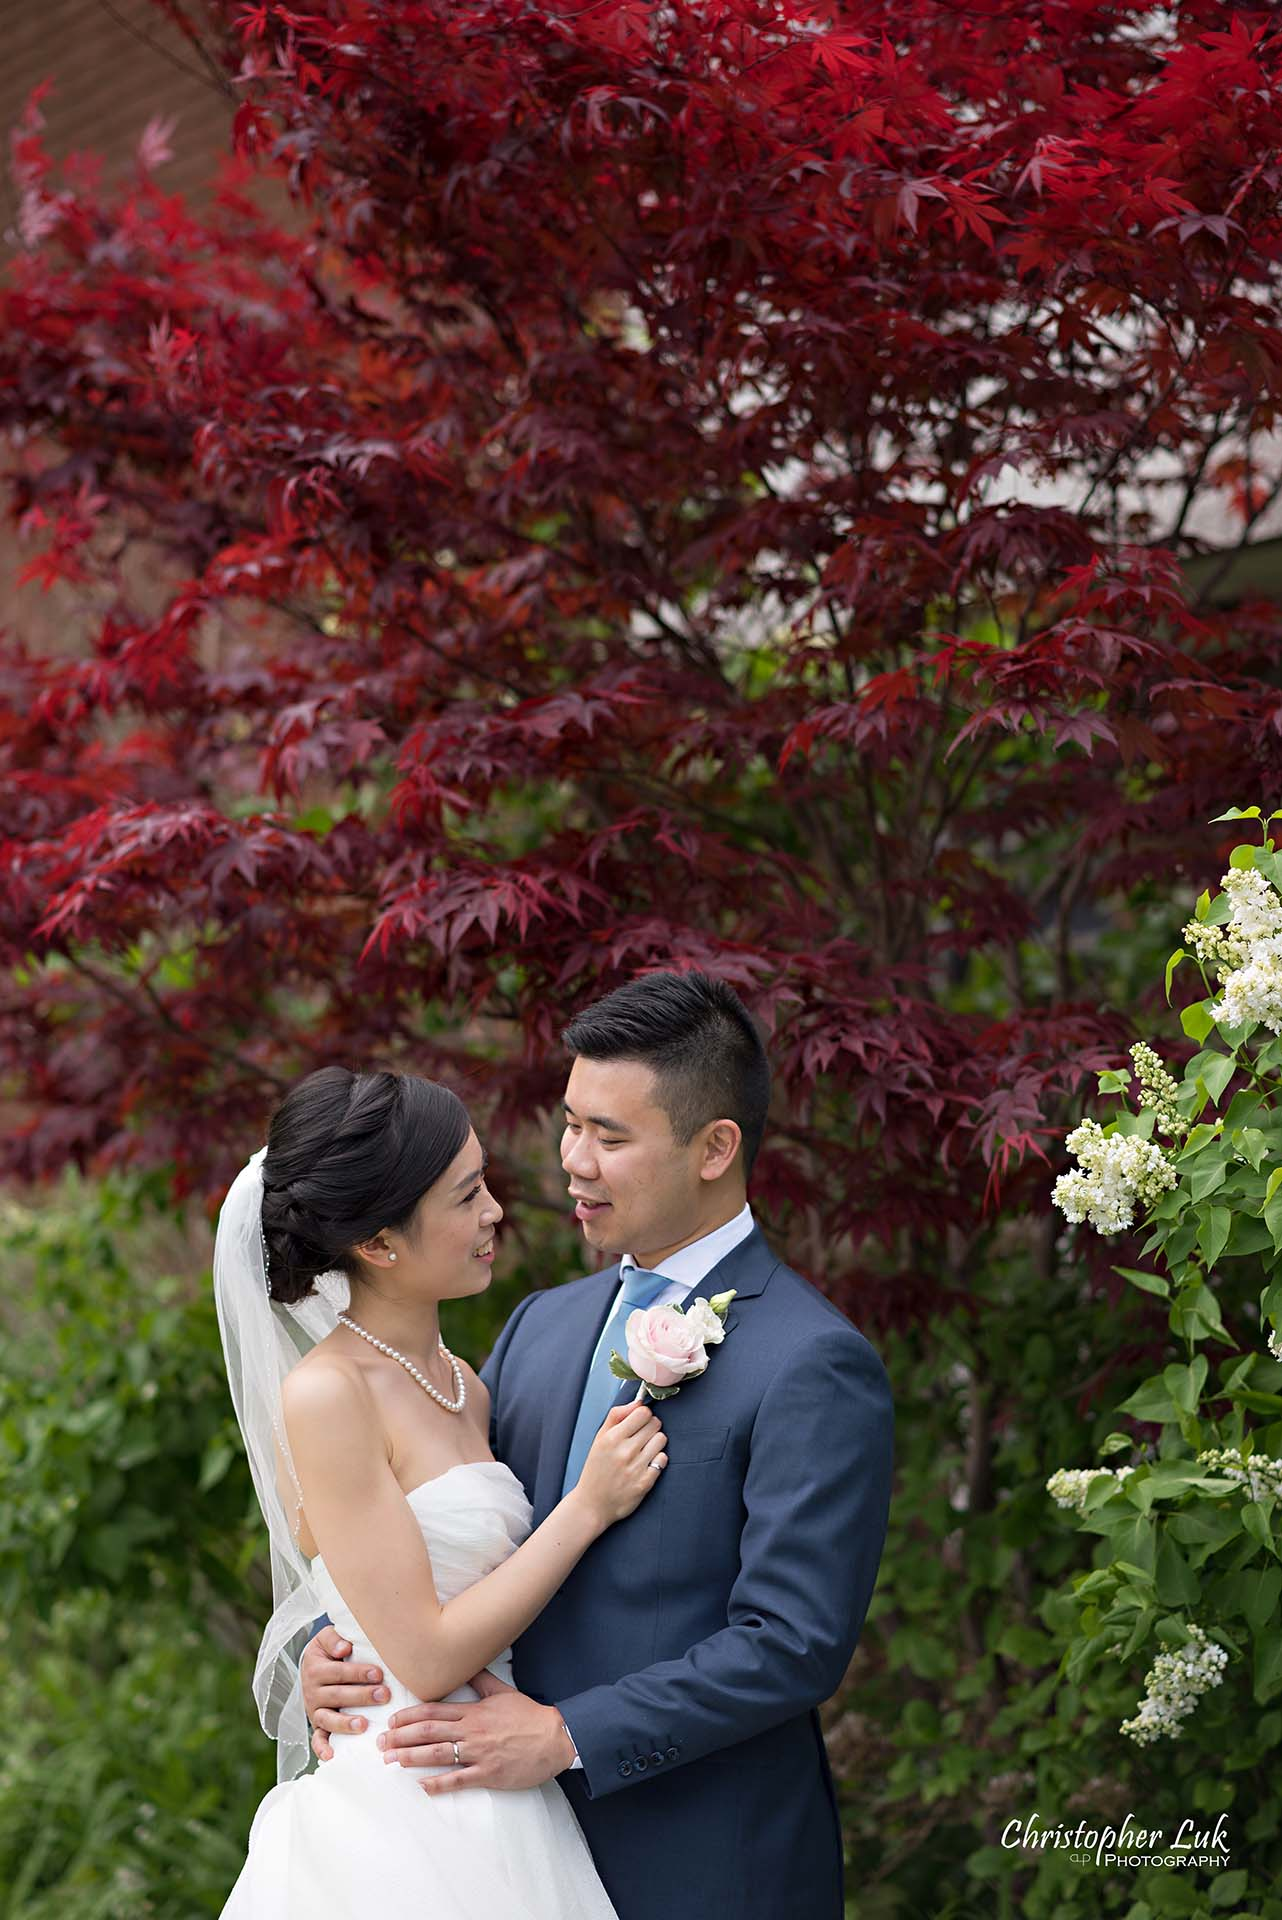 Christopher Luk Toronto Wedding Photographer Chinese Gospel Church Scarborough Ceremony Bride Groom Candid Natural Photojournalistic Portrait Holding Each Other Hug Smile